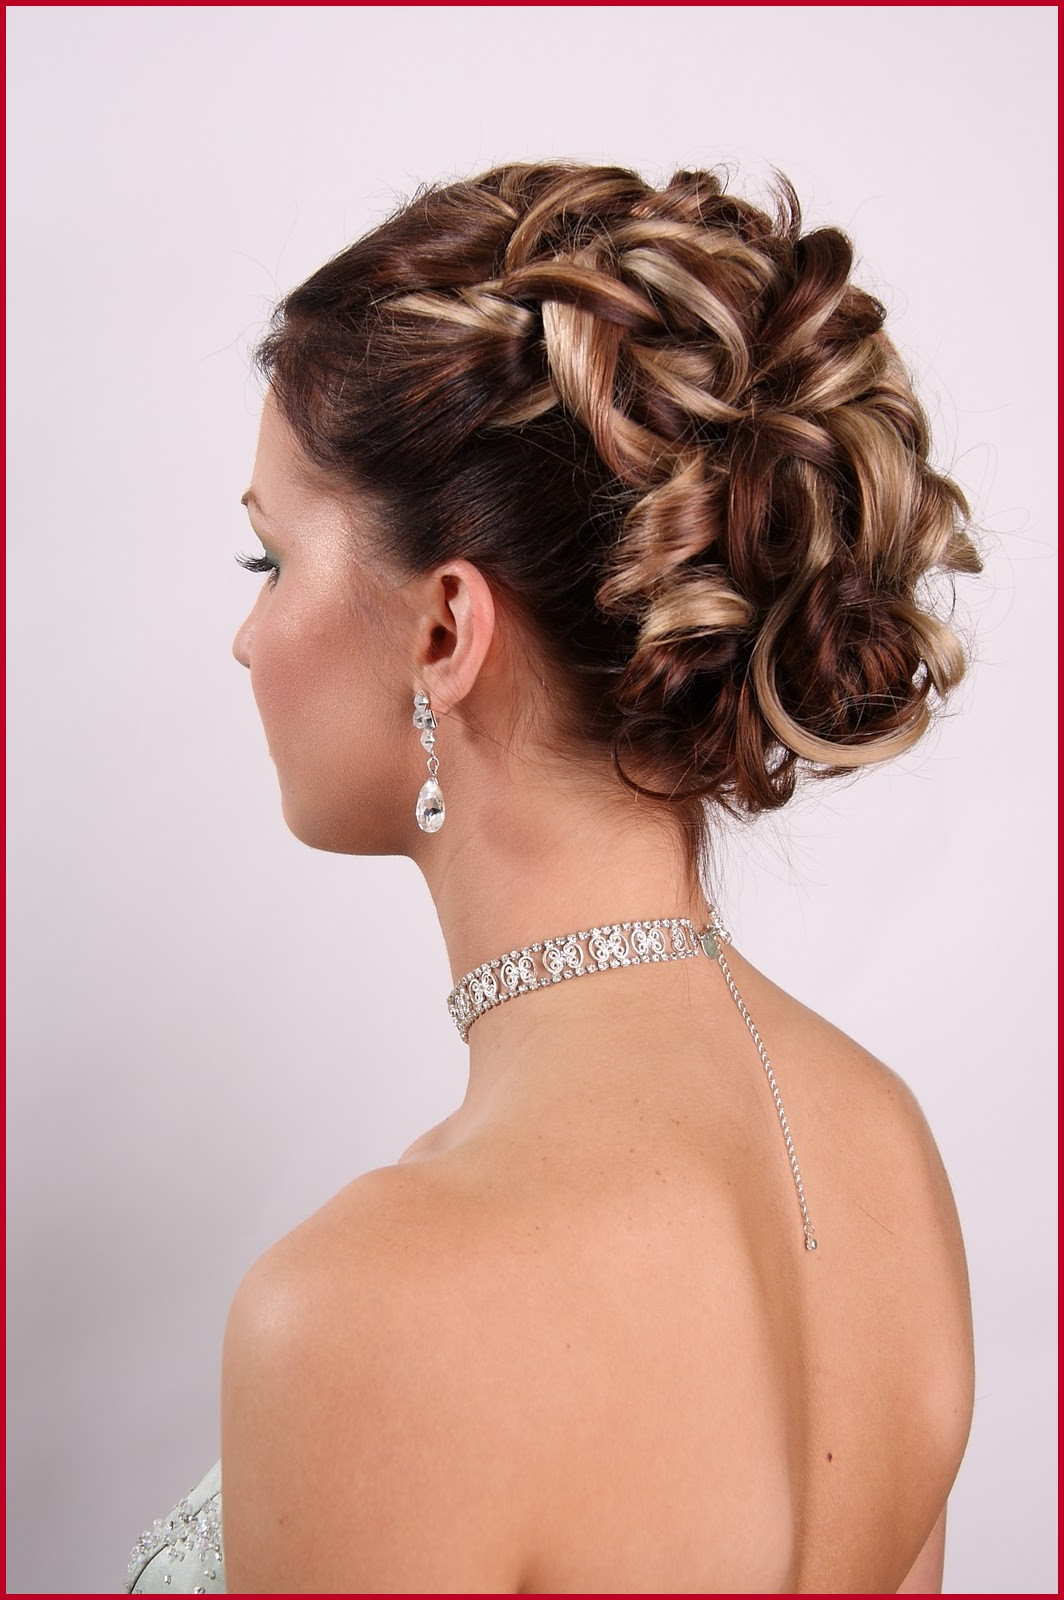 Hairstyles For Wedding Shoulder Length Hair 298367 Wedding Inside Hairstyles For Brides With Short Hair (View 13 of 25)